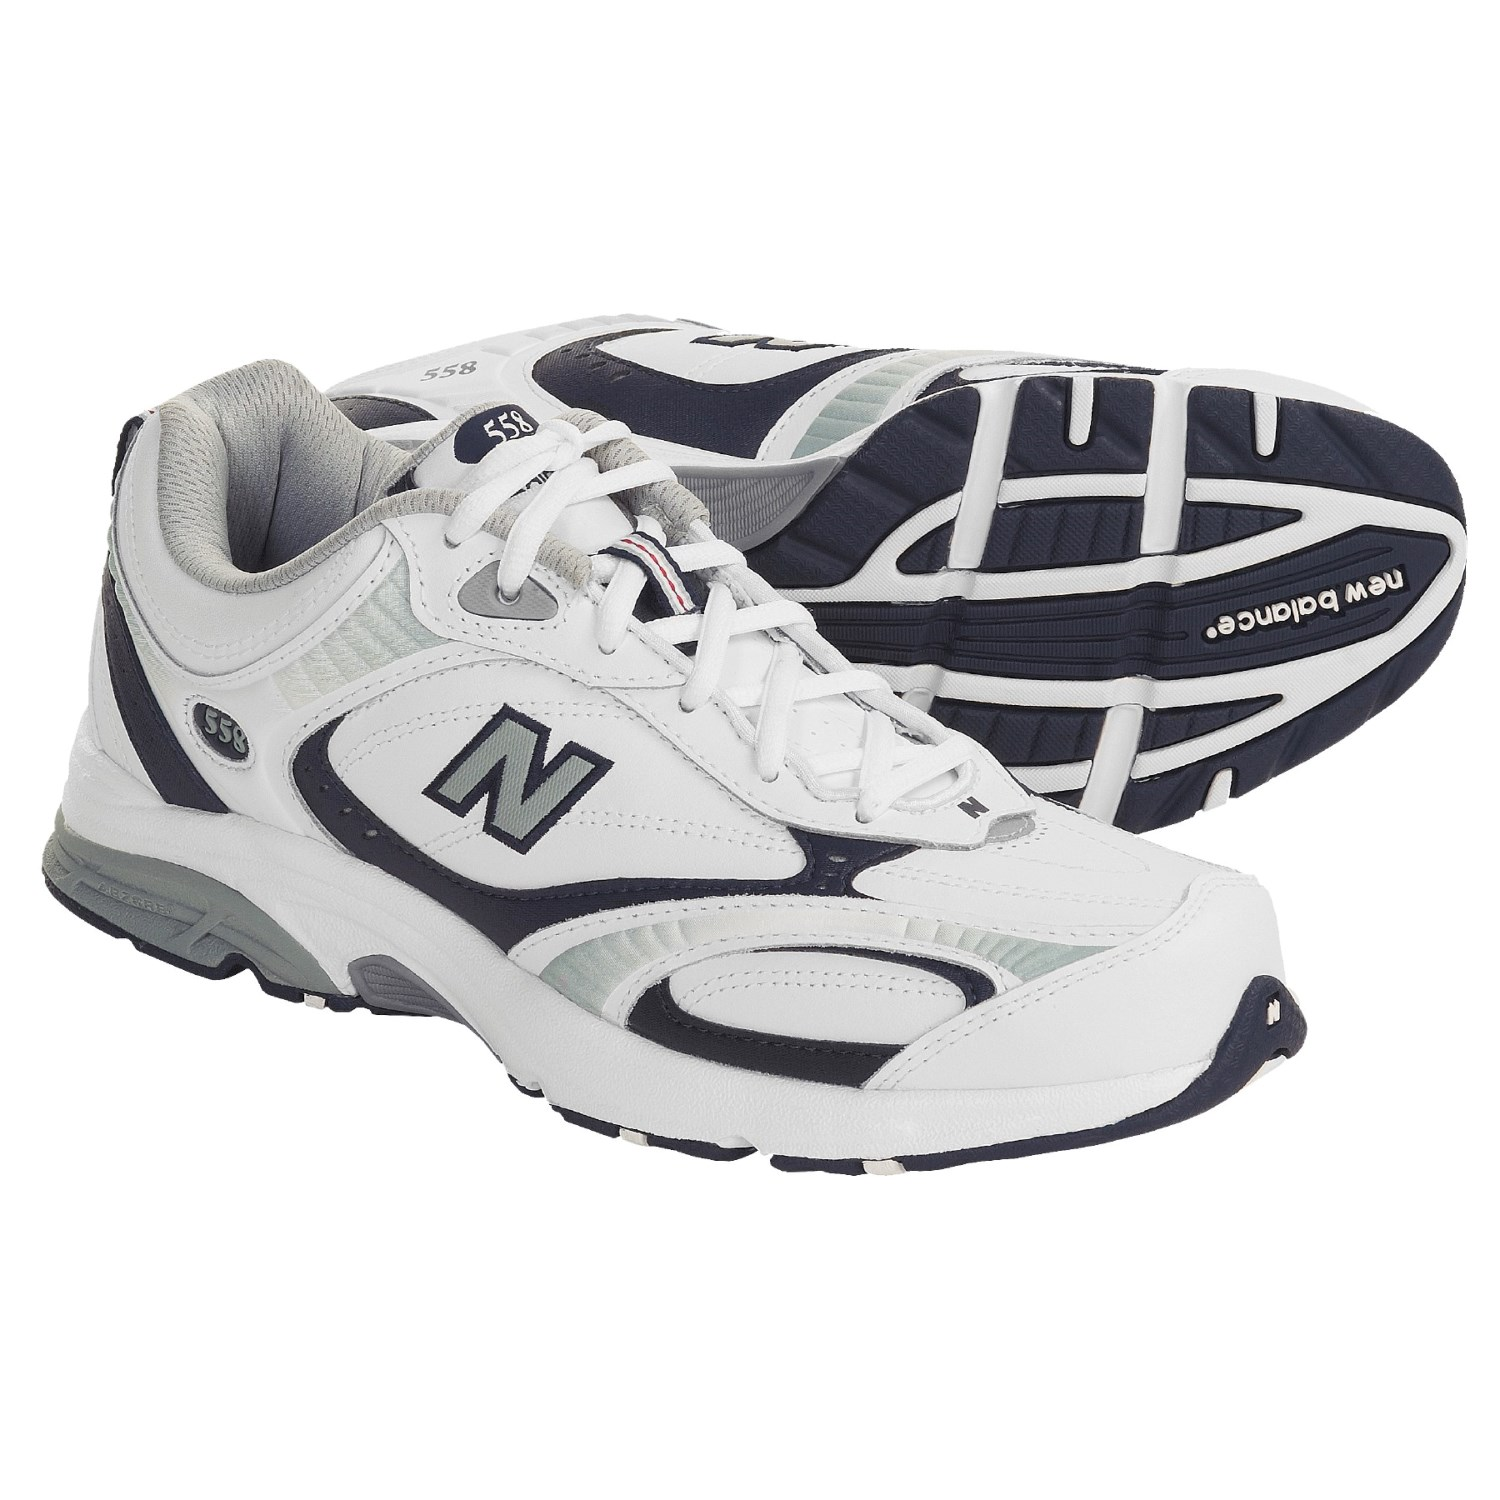 Compare Saucony And New Balance Walking Shoes